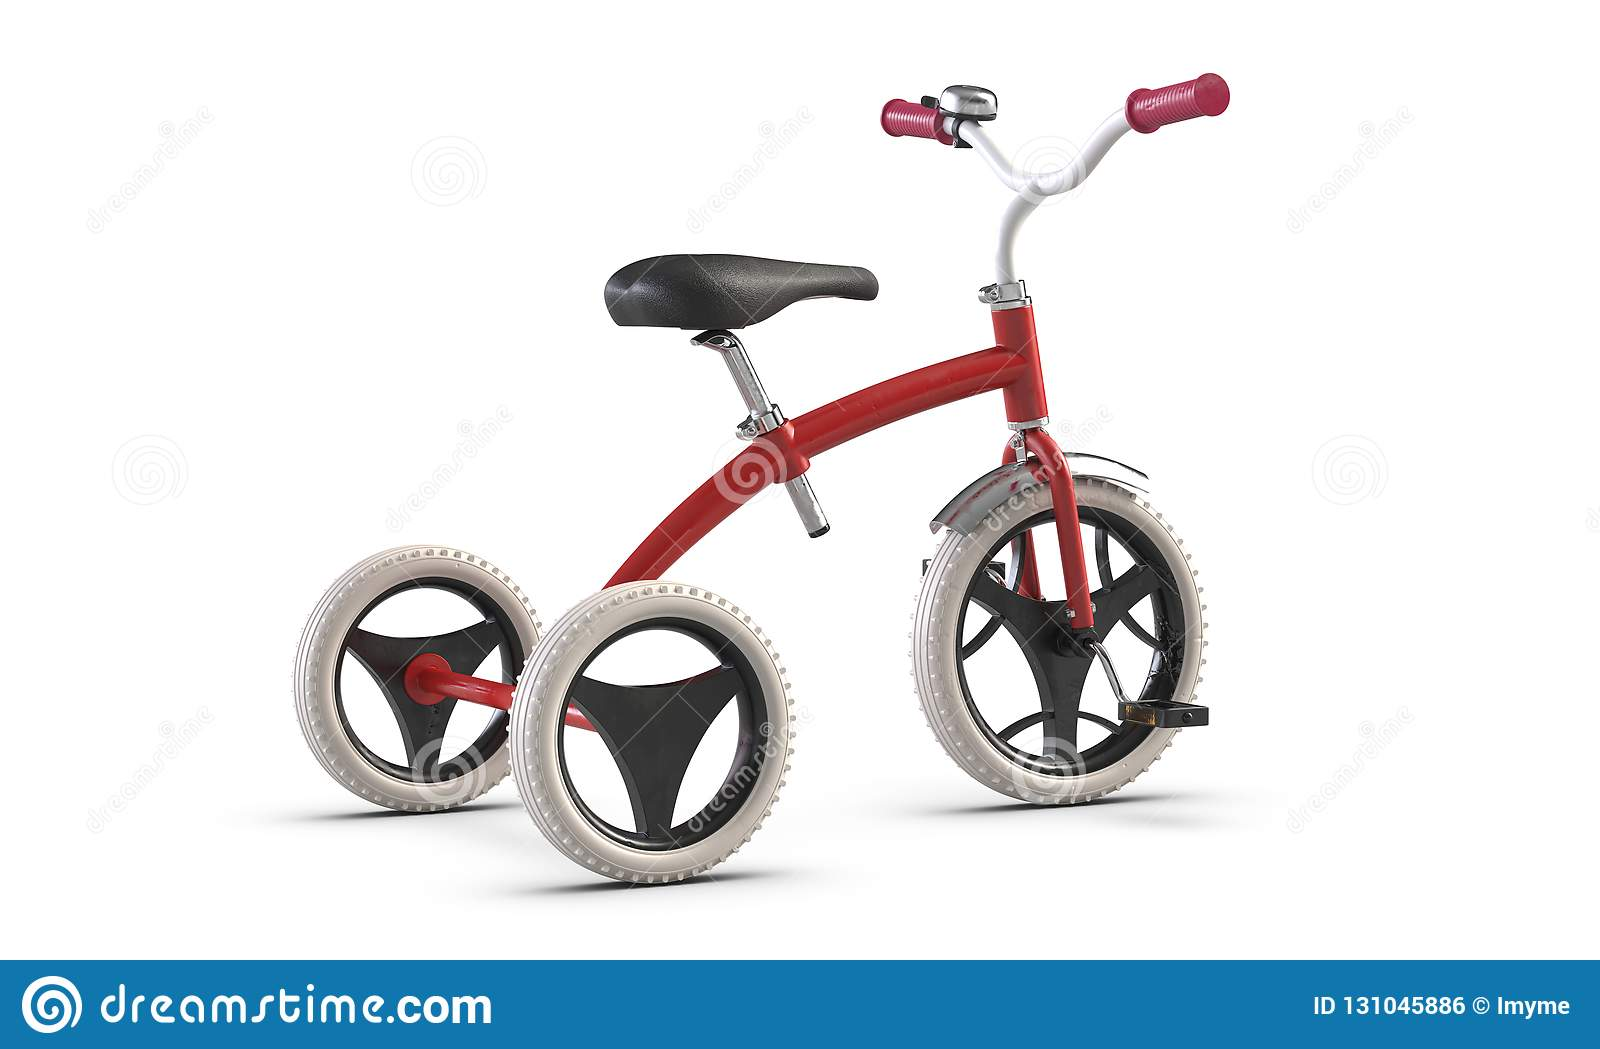 3d Illustrate Of Children S Tricycle Pink Bicycle Isolated On White Background Stock Illustration Illustration Of Pursuit Antique 131045886